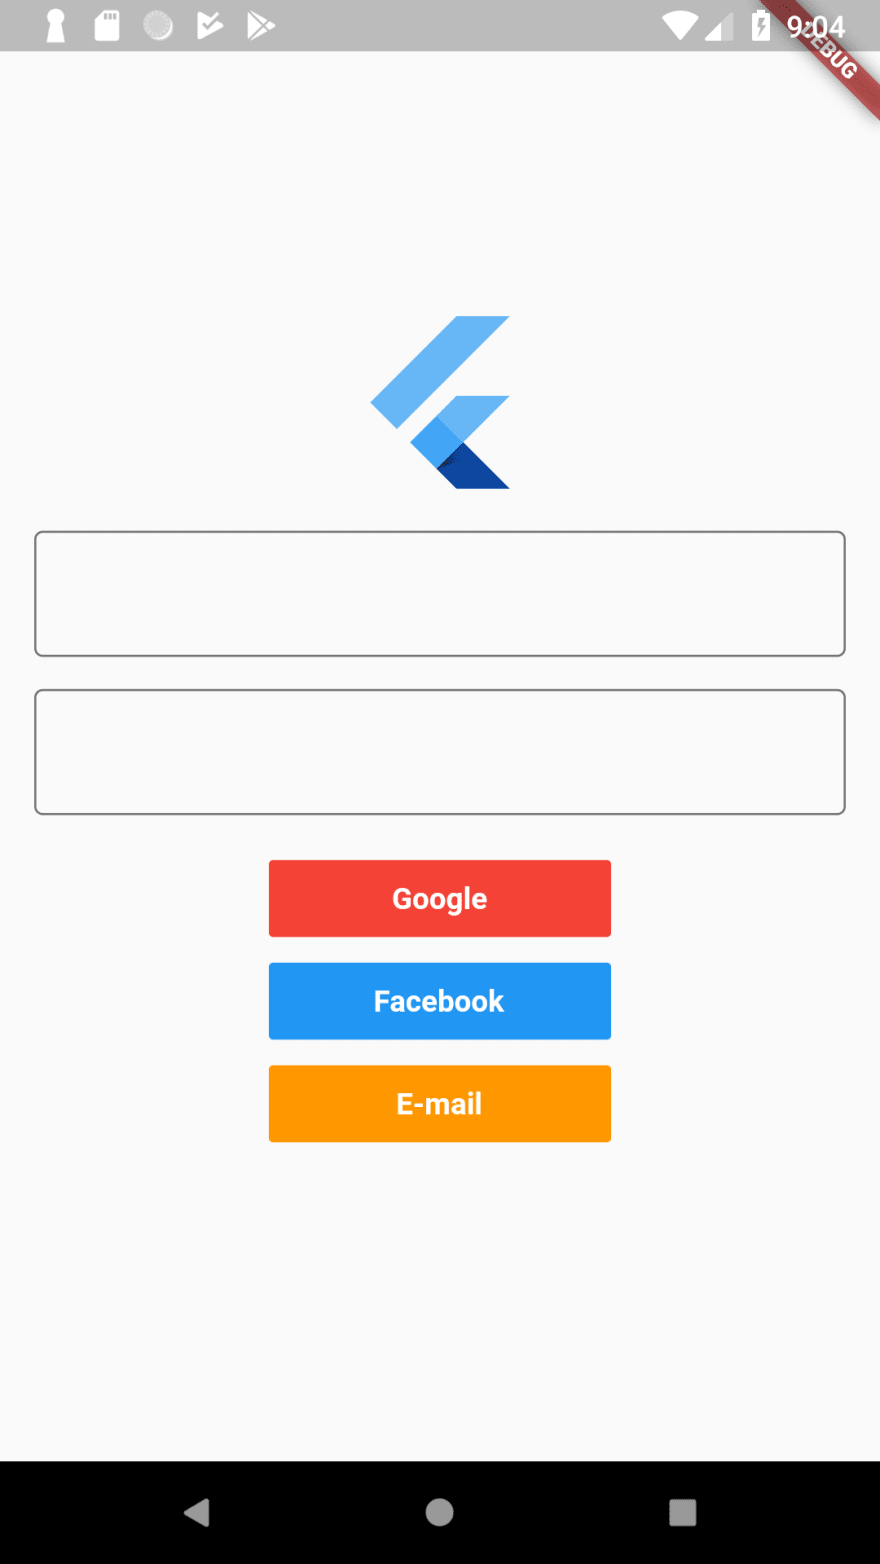 Flutter Forms: Improving UI/UX with SingleChildScrollView